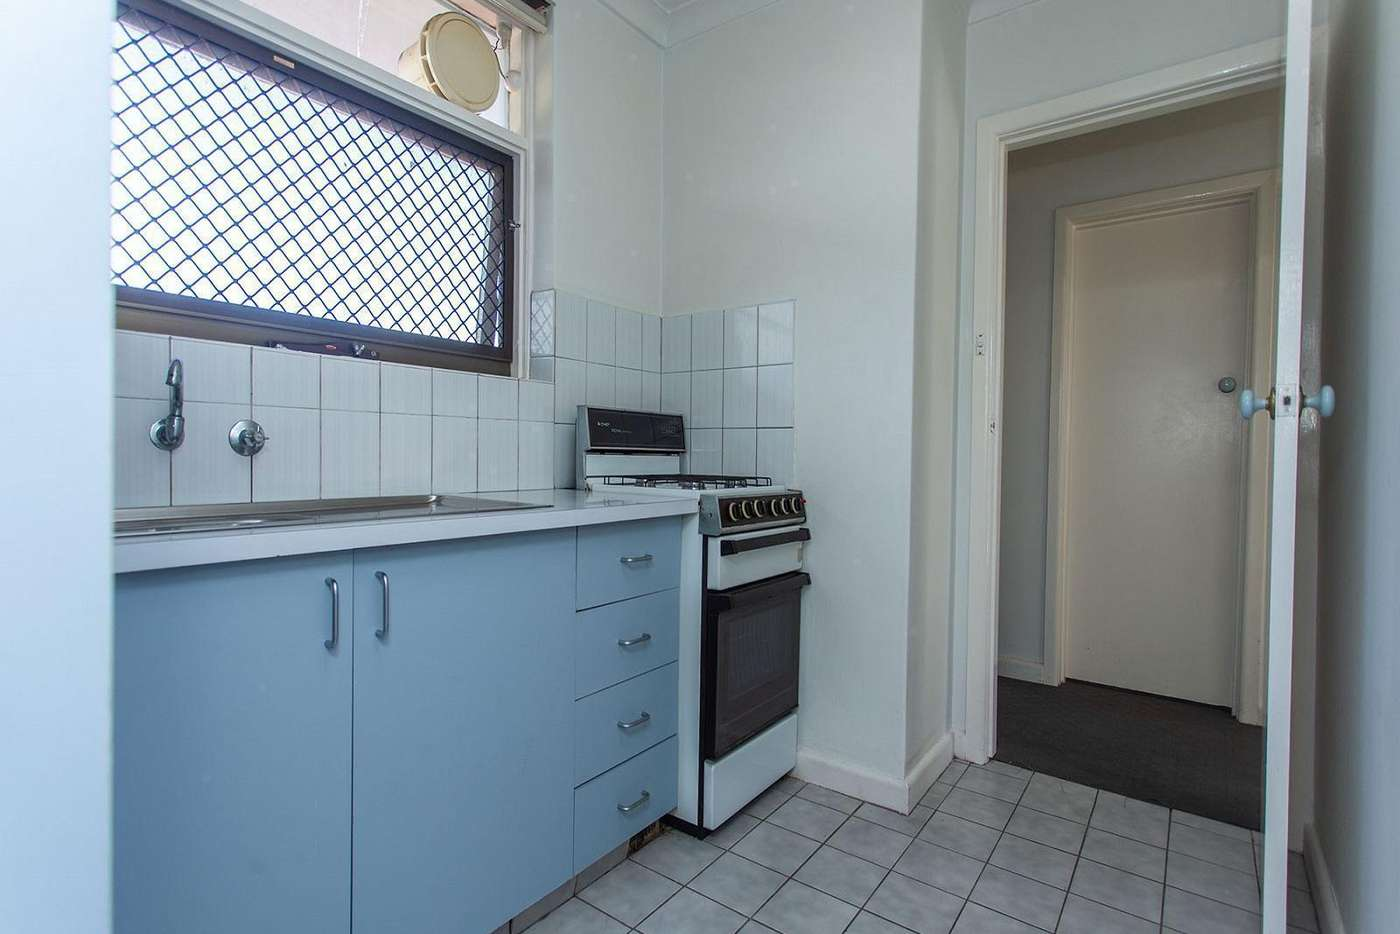 Fifth view of Homely apartment listing, 12/82 Pakington Street, St Kilda VIC 3182